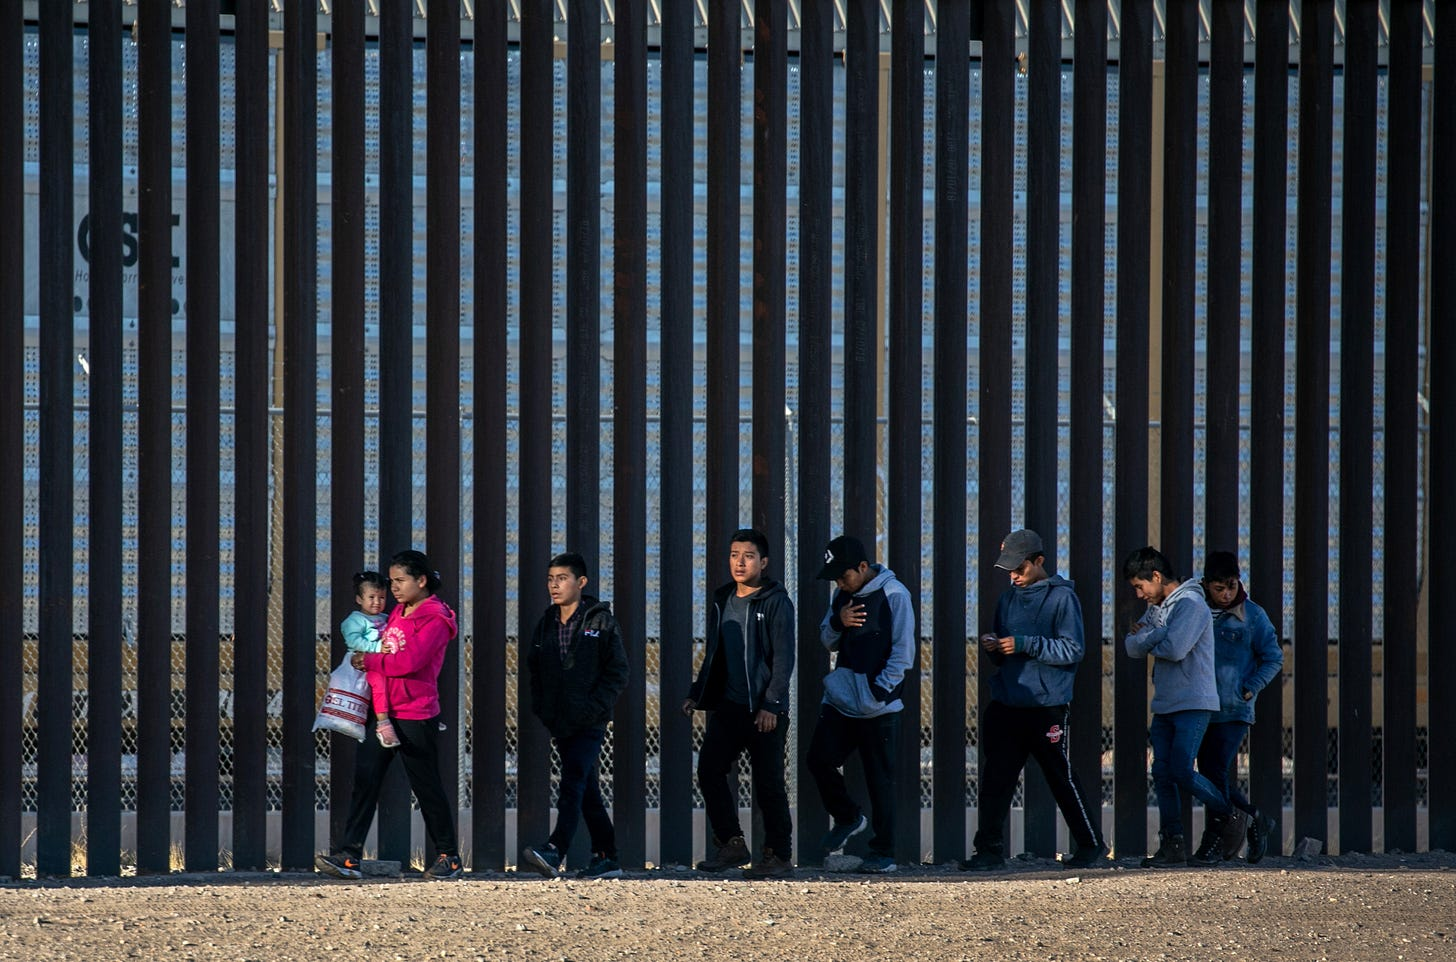 Undocumented immigrants walk along the U.S.-Mexico border wall after they ran across the shallow Rio Grande into El Paso on March 17, 2021 in Ciudad Juarez, Mexico. U.S. immigration officials are dealing with an immigrant surge along the southwest border with Mexico. (Photo by John Moore/Getty Images)